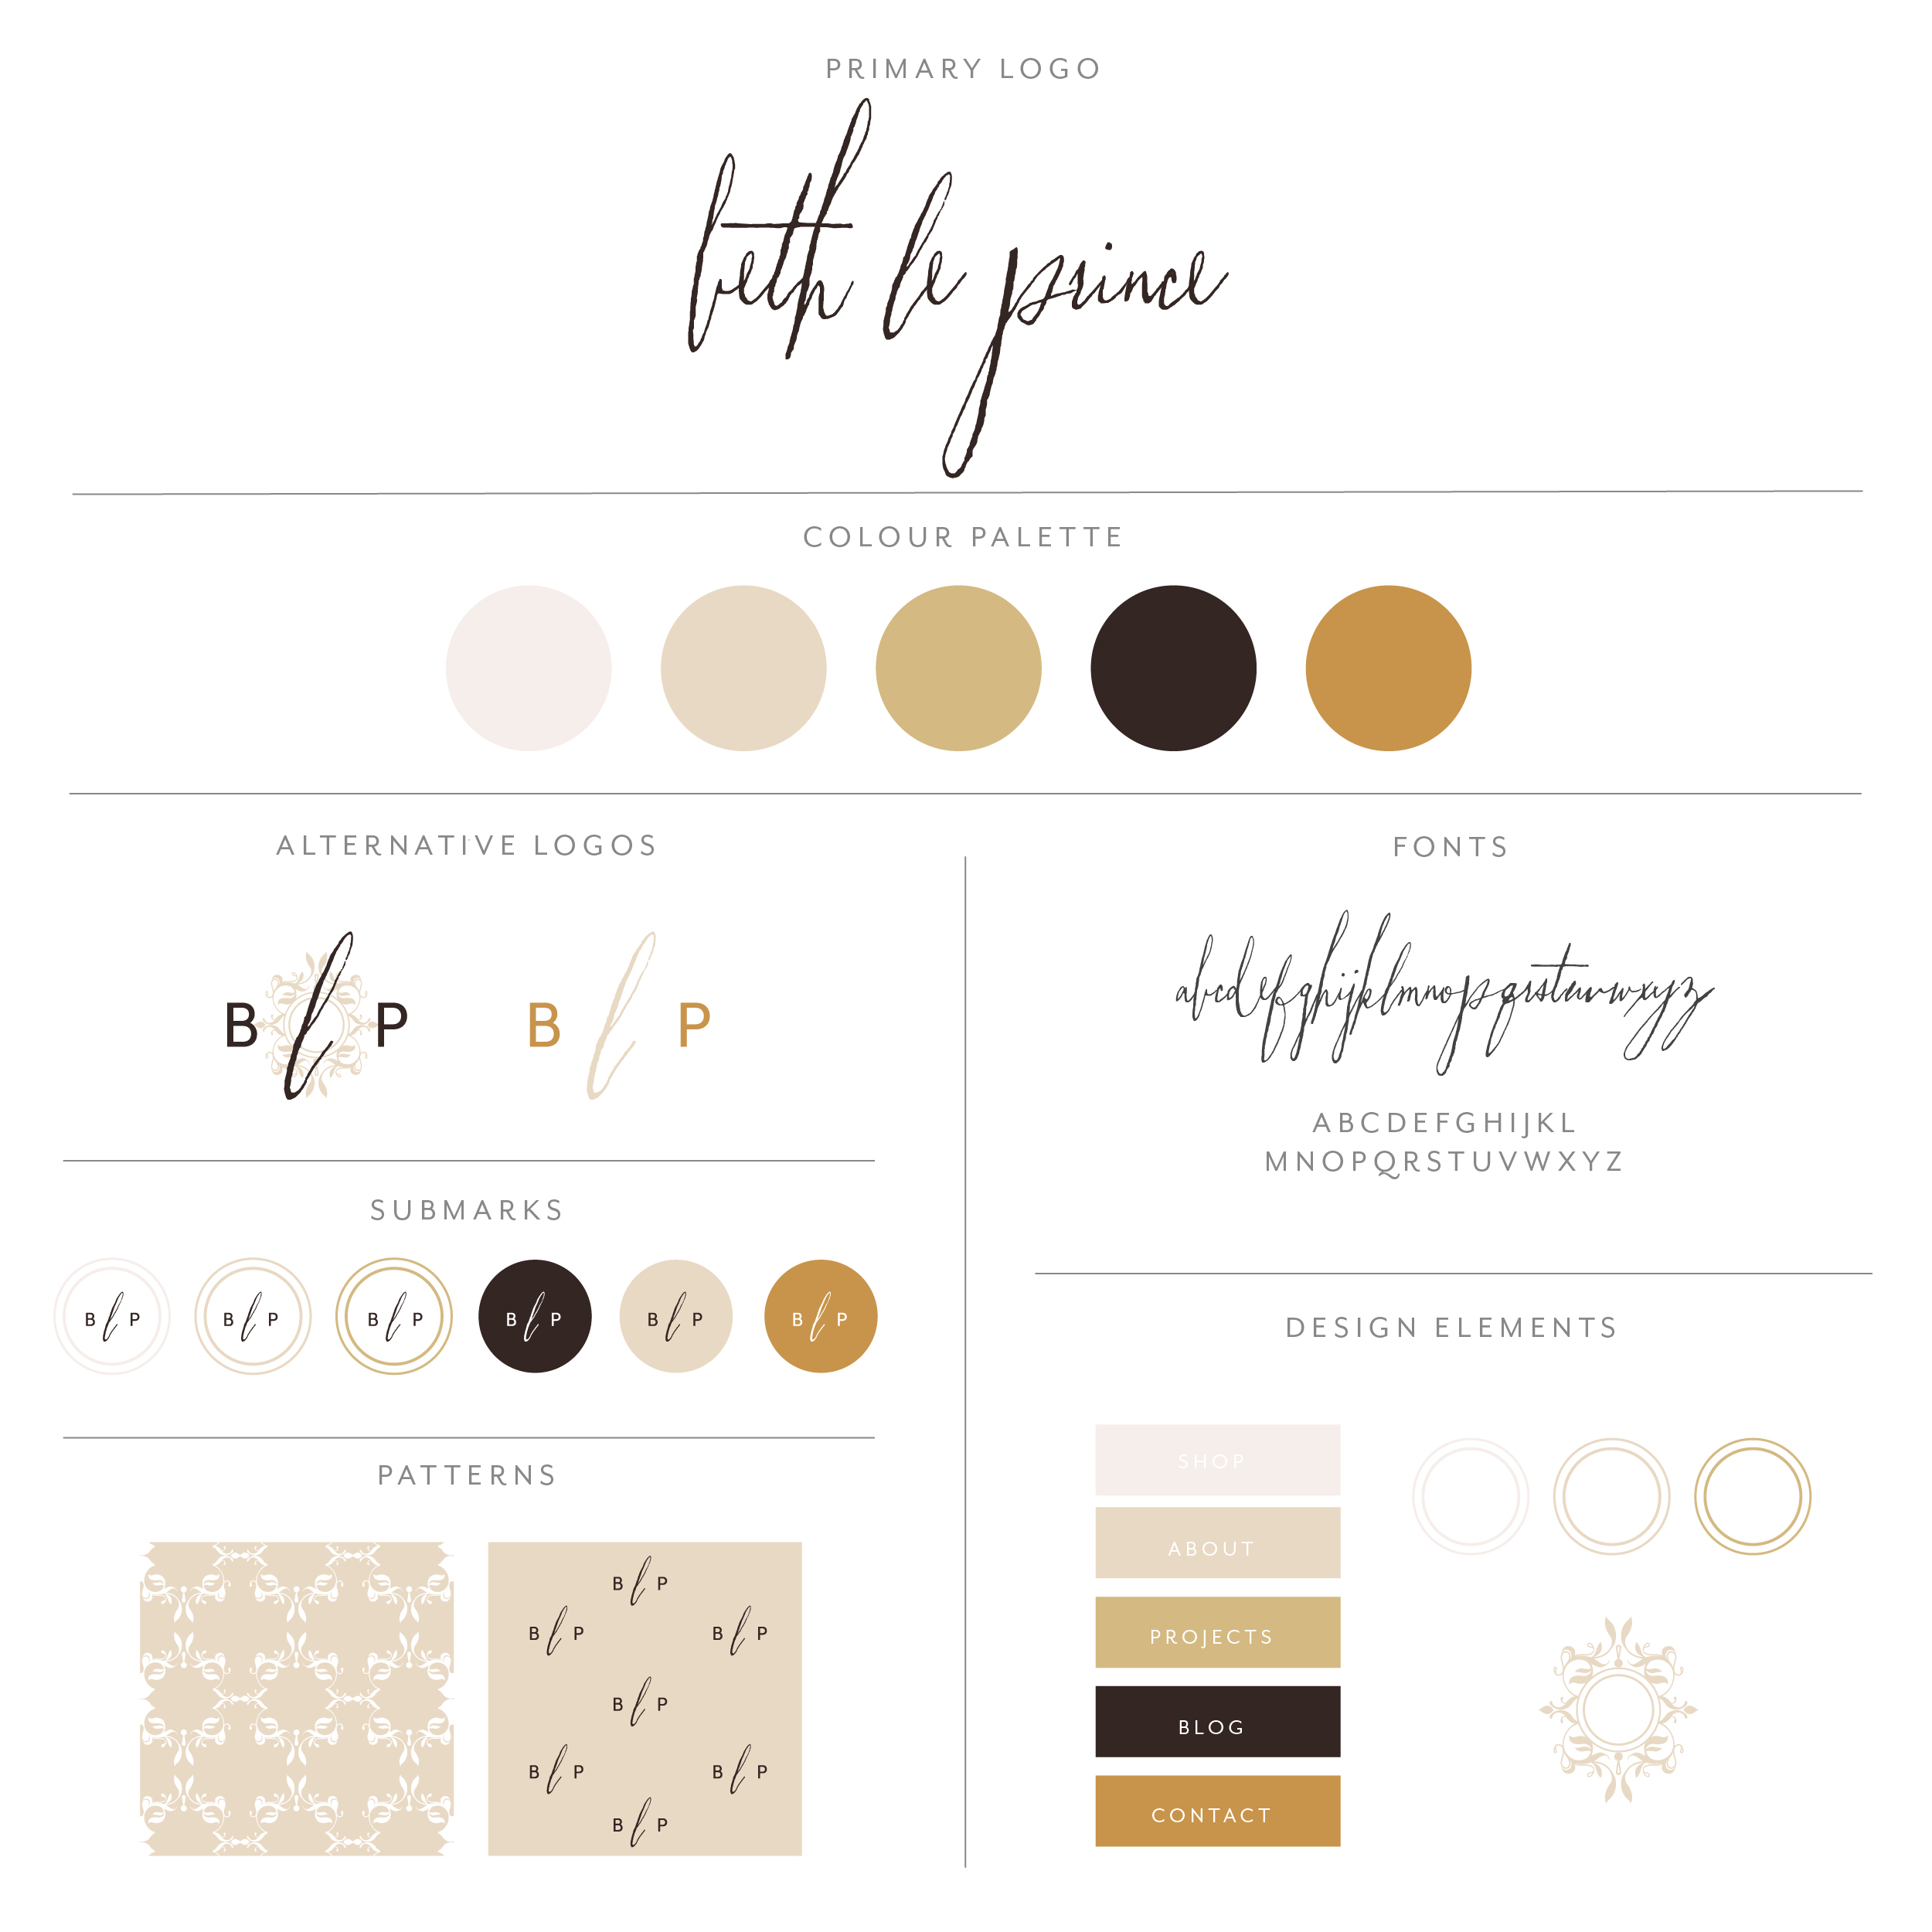 Beth le Prince branding collection, calligraphy font with long frivolous loops, the look of imperfect hand writing with a neutral earth tone color palette. Sophisticated yet simplistic design